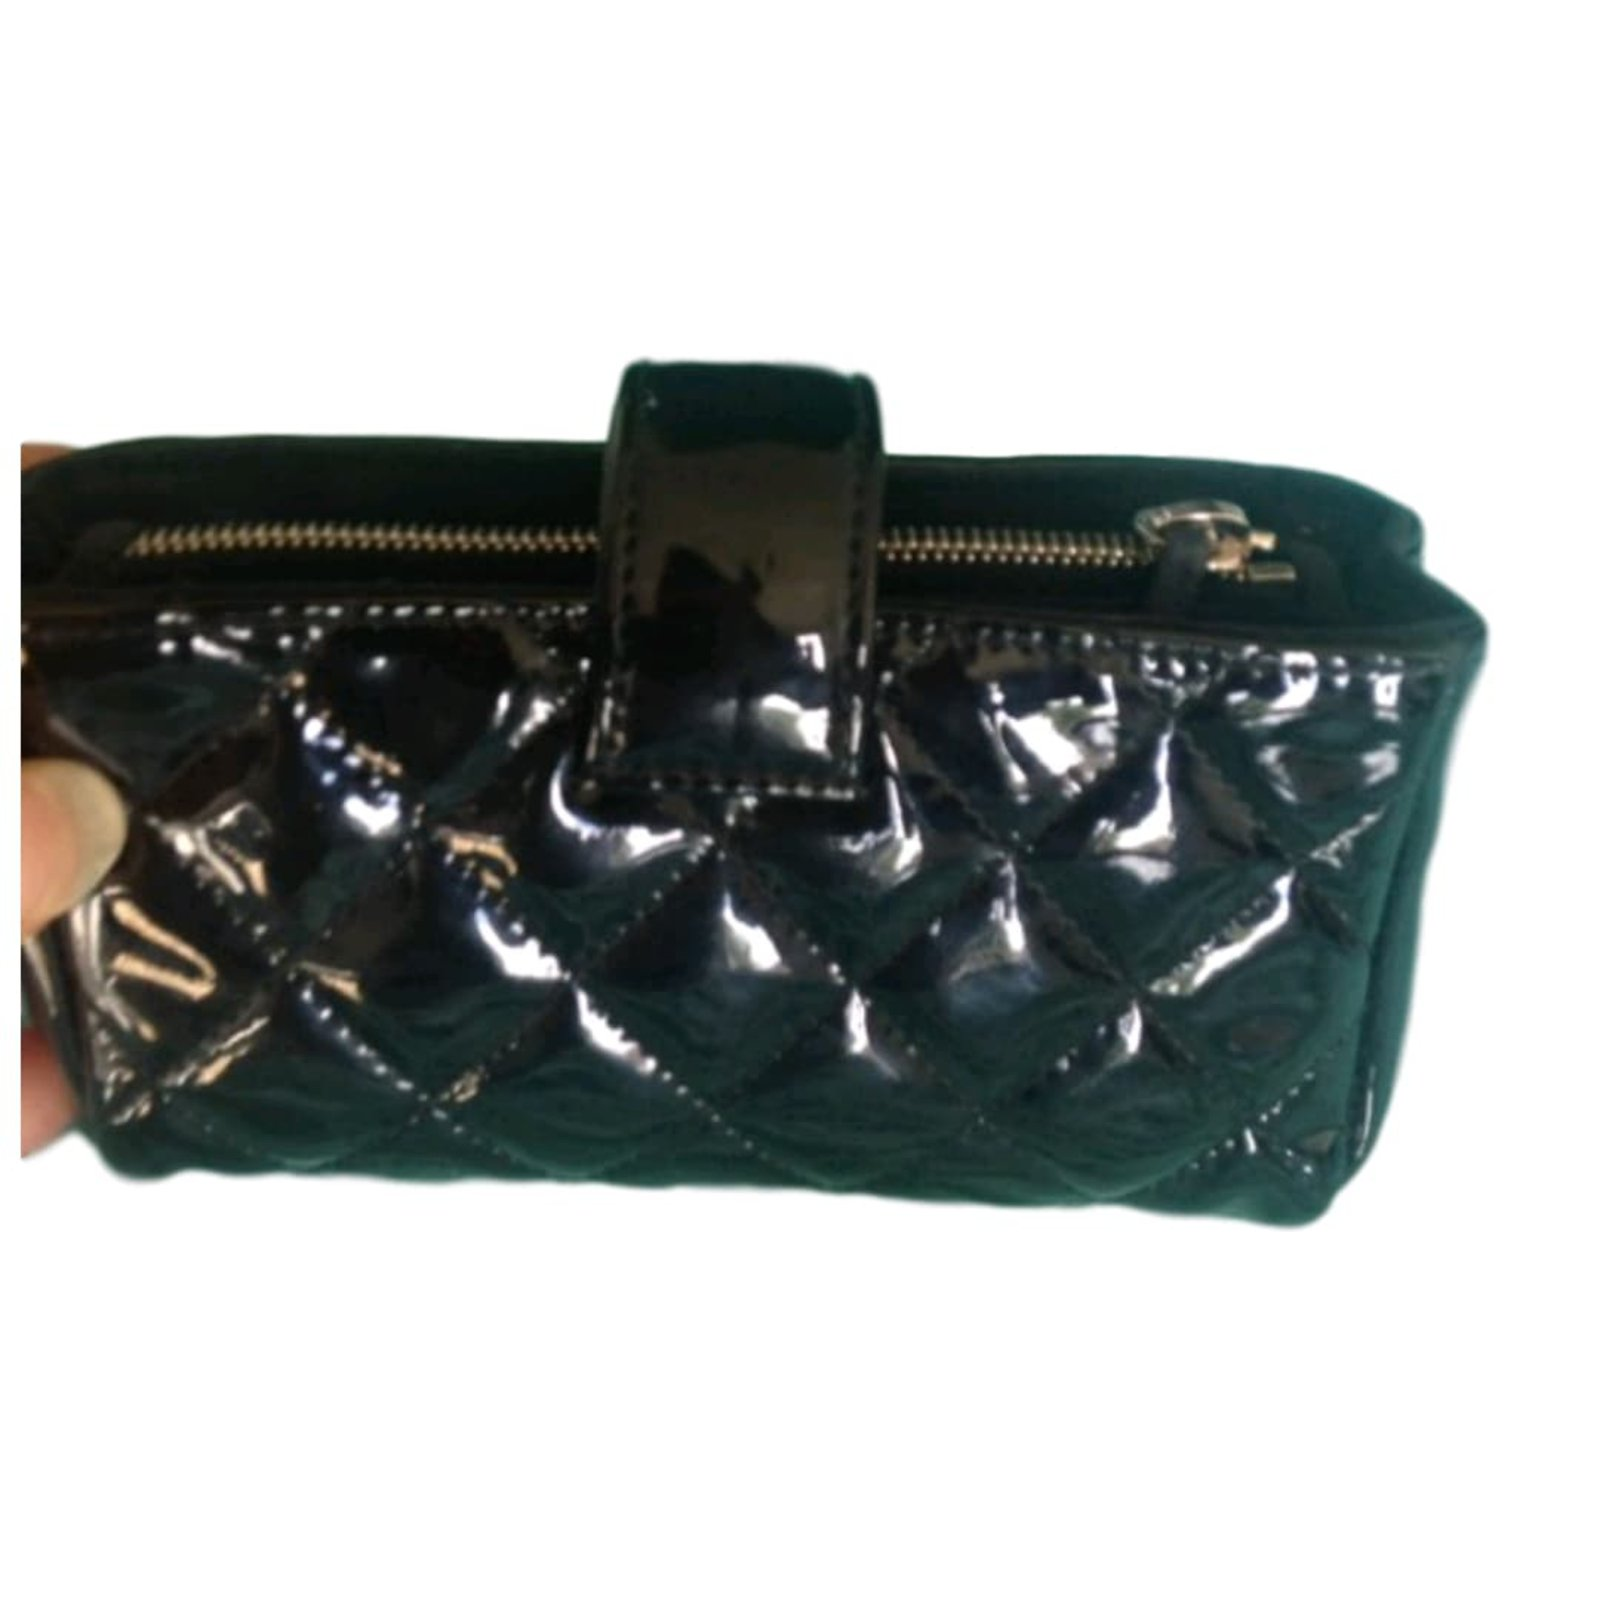 36b0beb8ca7c Chanel Coin purse Purses, wallets, cases Patent leather Black ref ...